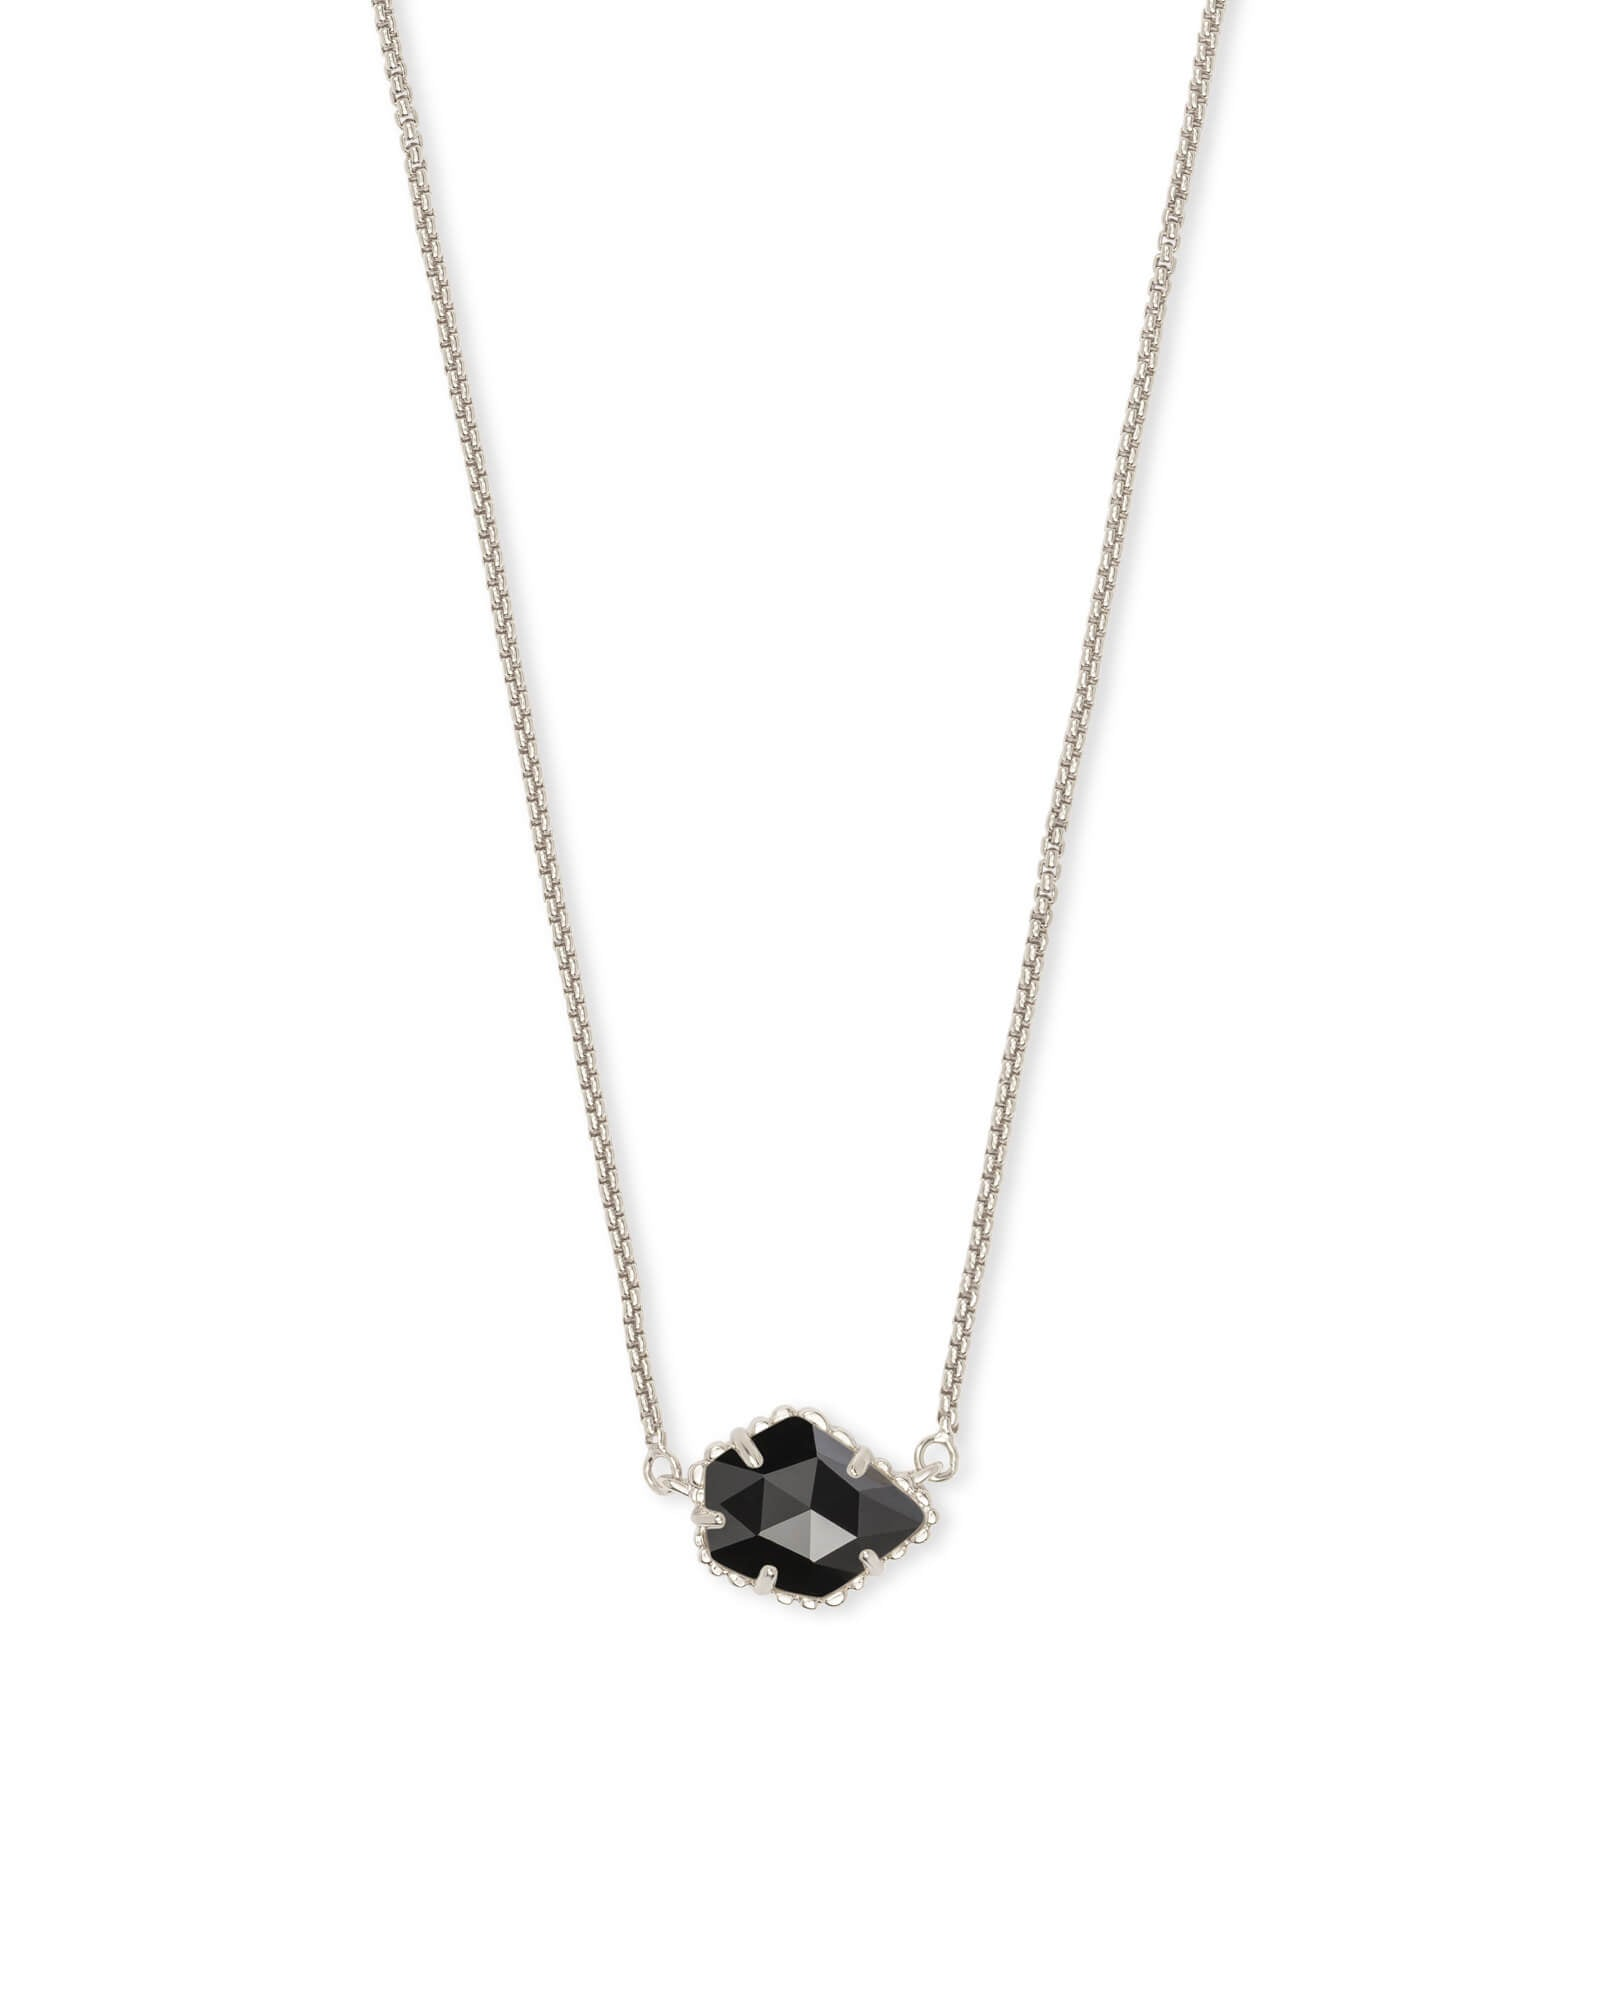 Tess Pendant Necklace in Black